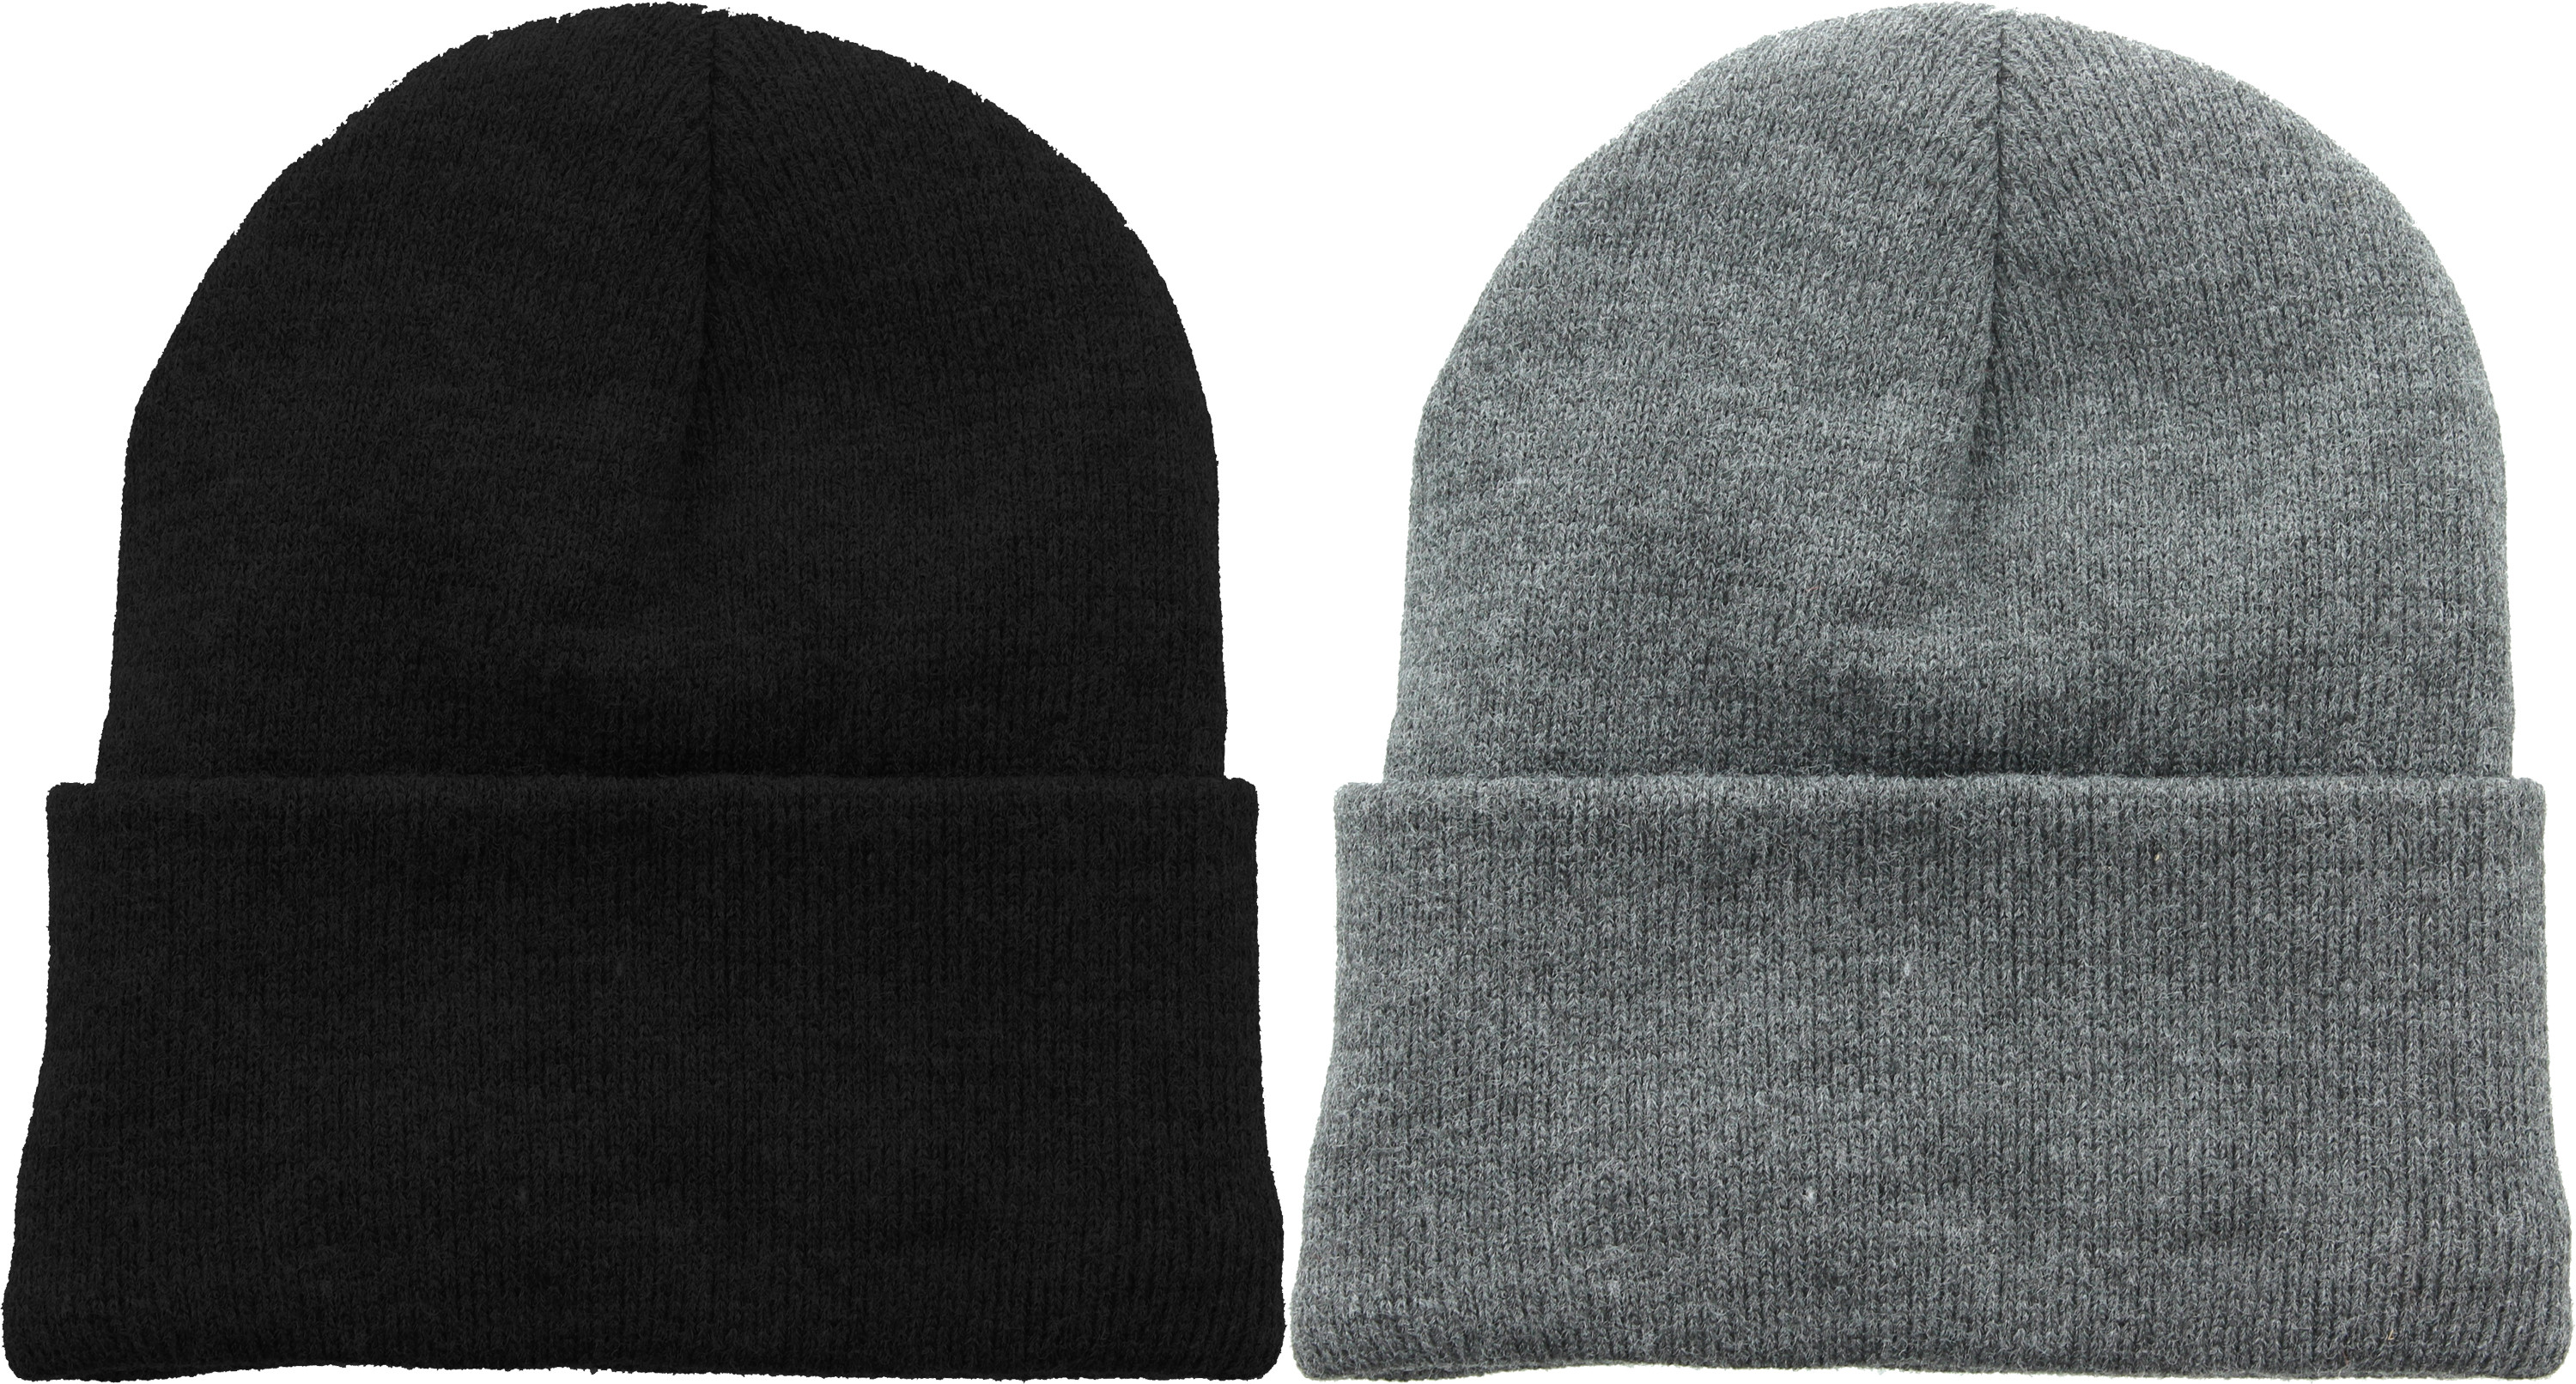 More Views. Big House Cold Weather Heavy Winter Fleece Lined Watch Cap ... c6c03175efaf